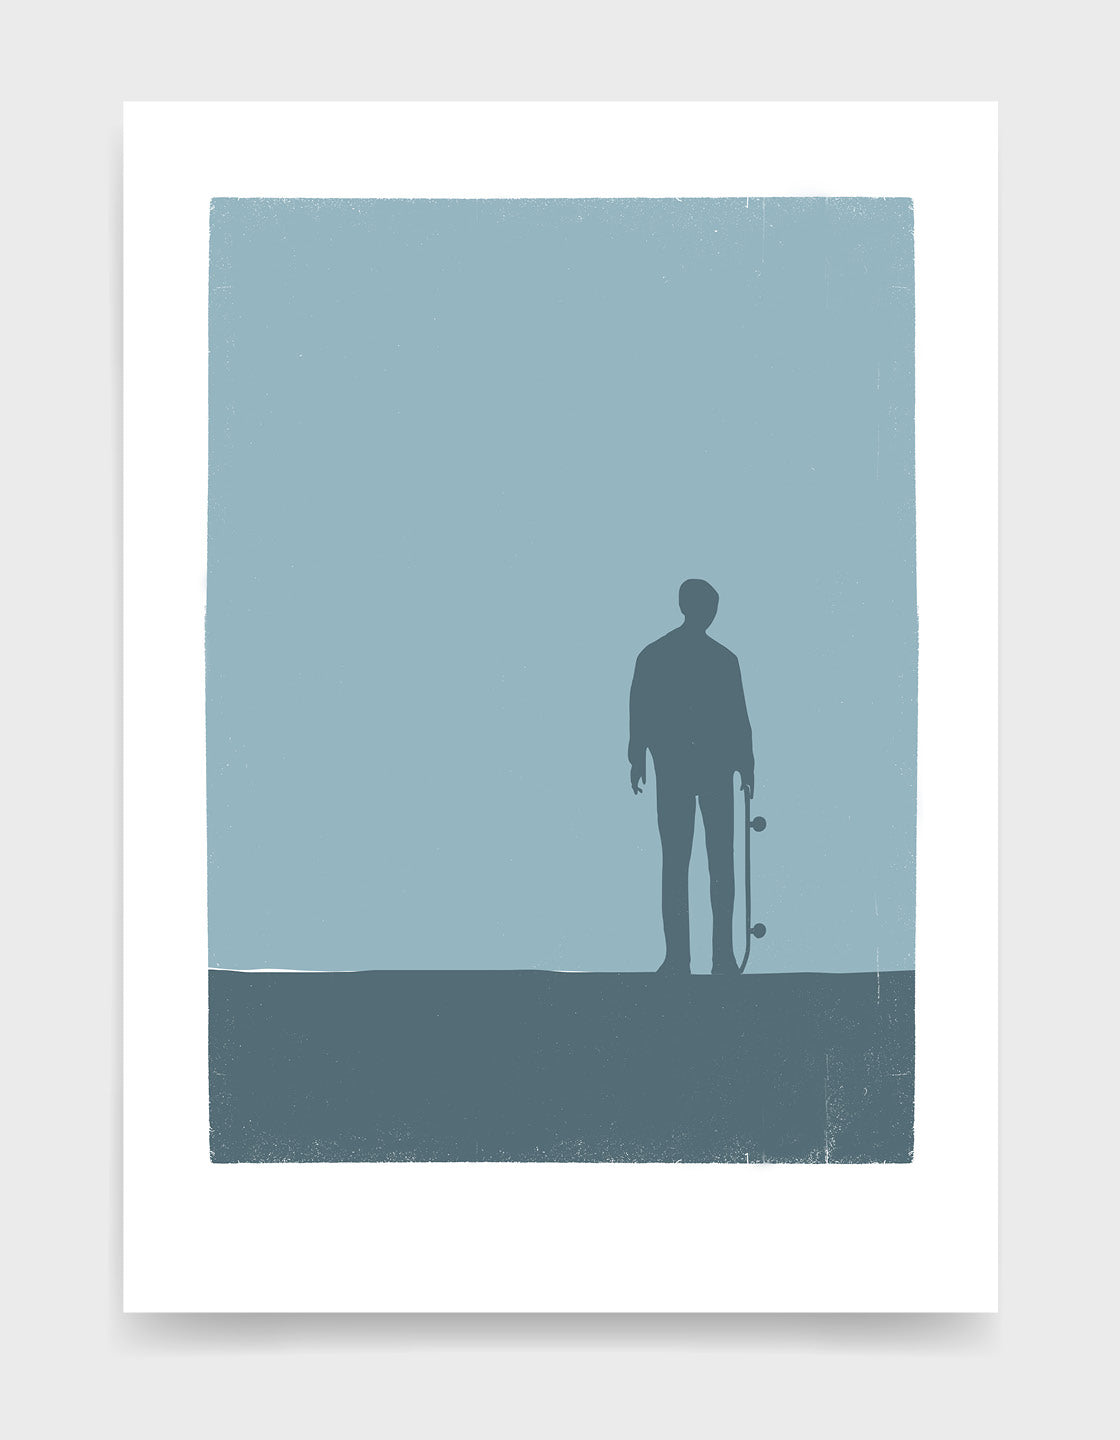 Art print depicting a shadow of a skateboarder standing and holding their skateboard against a blue background